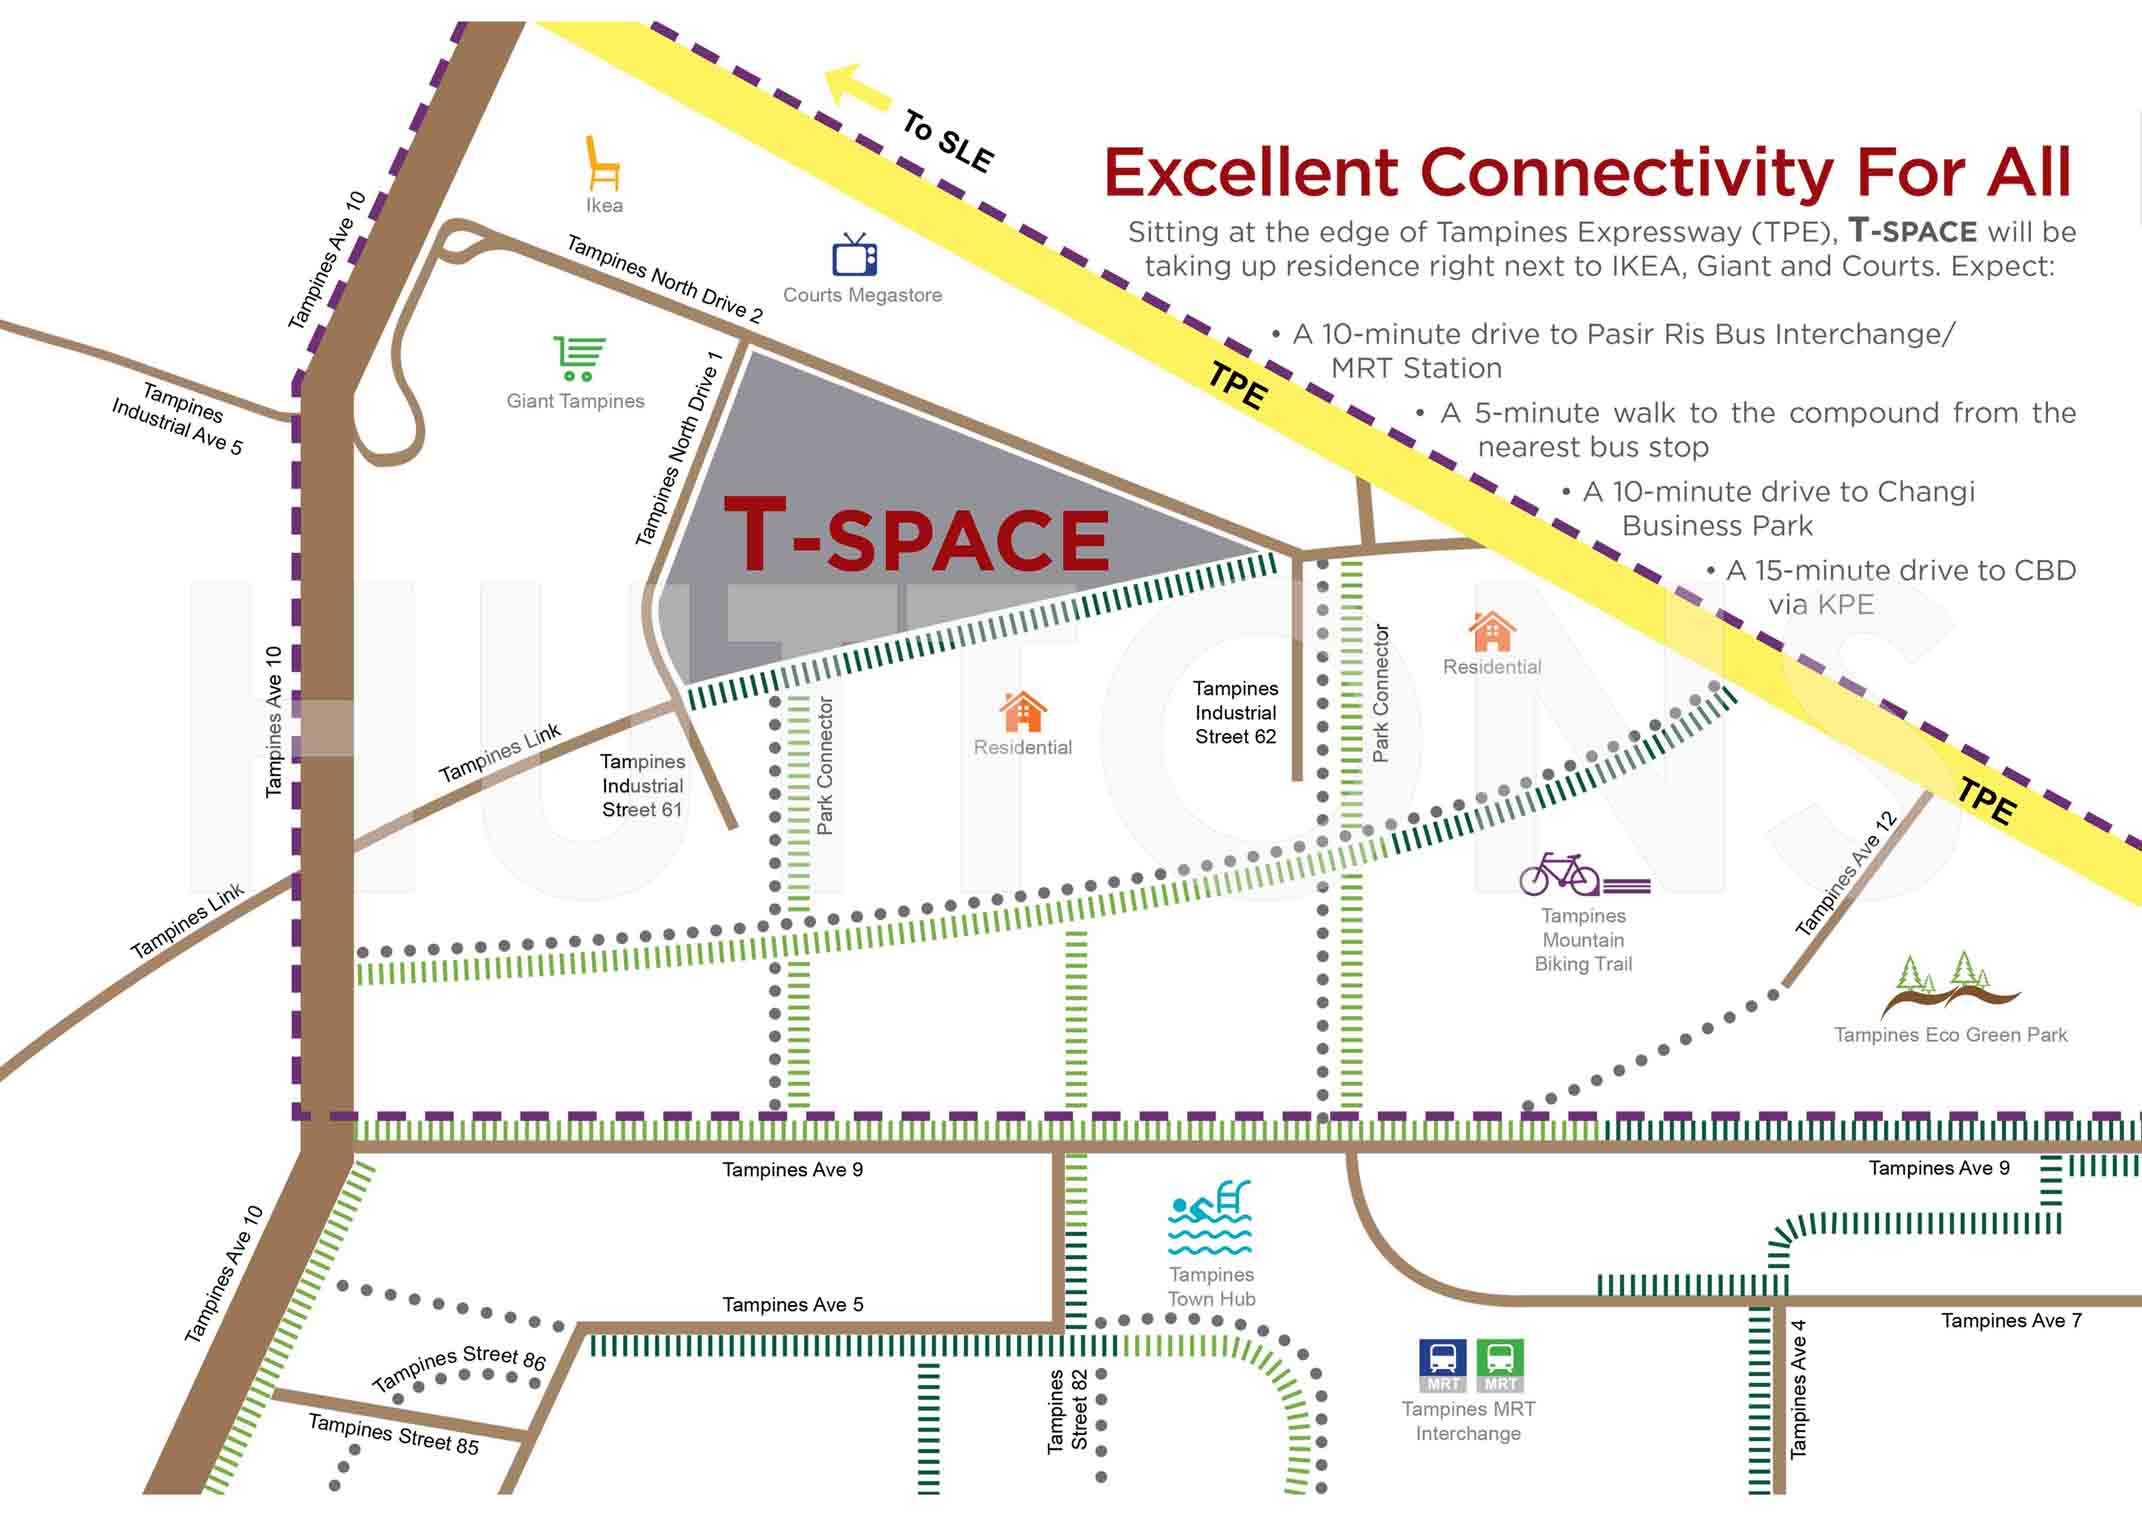 http://www.singaporeproplaunch.com/wp-content/uploads/2016/03/T-Space-Location-Map.jpg